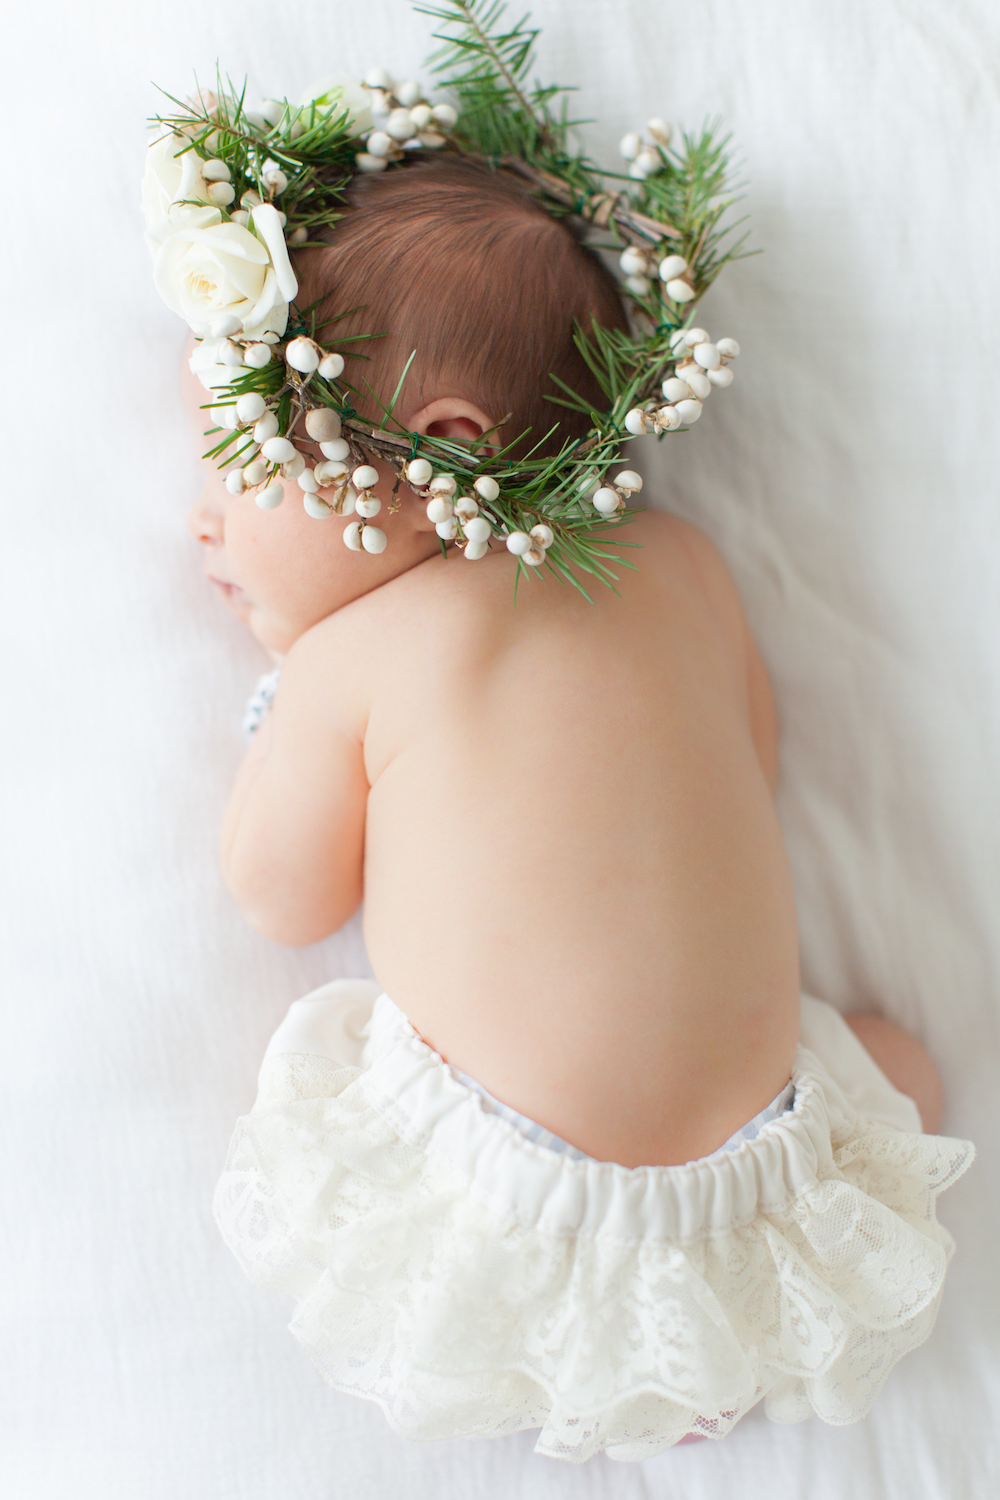 New Born photography tips MONIKA HIBBS